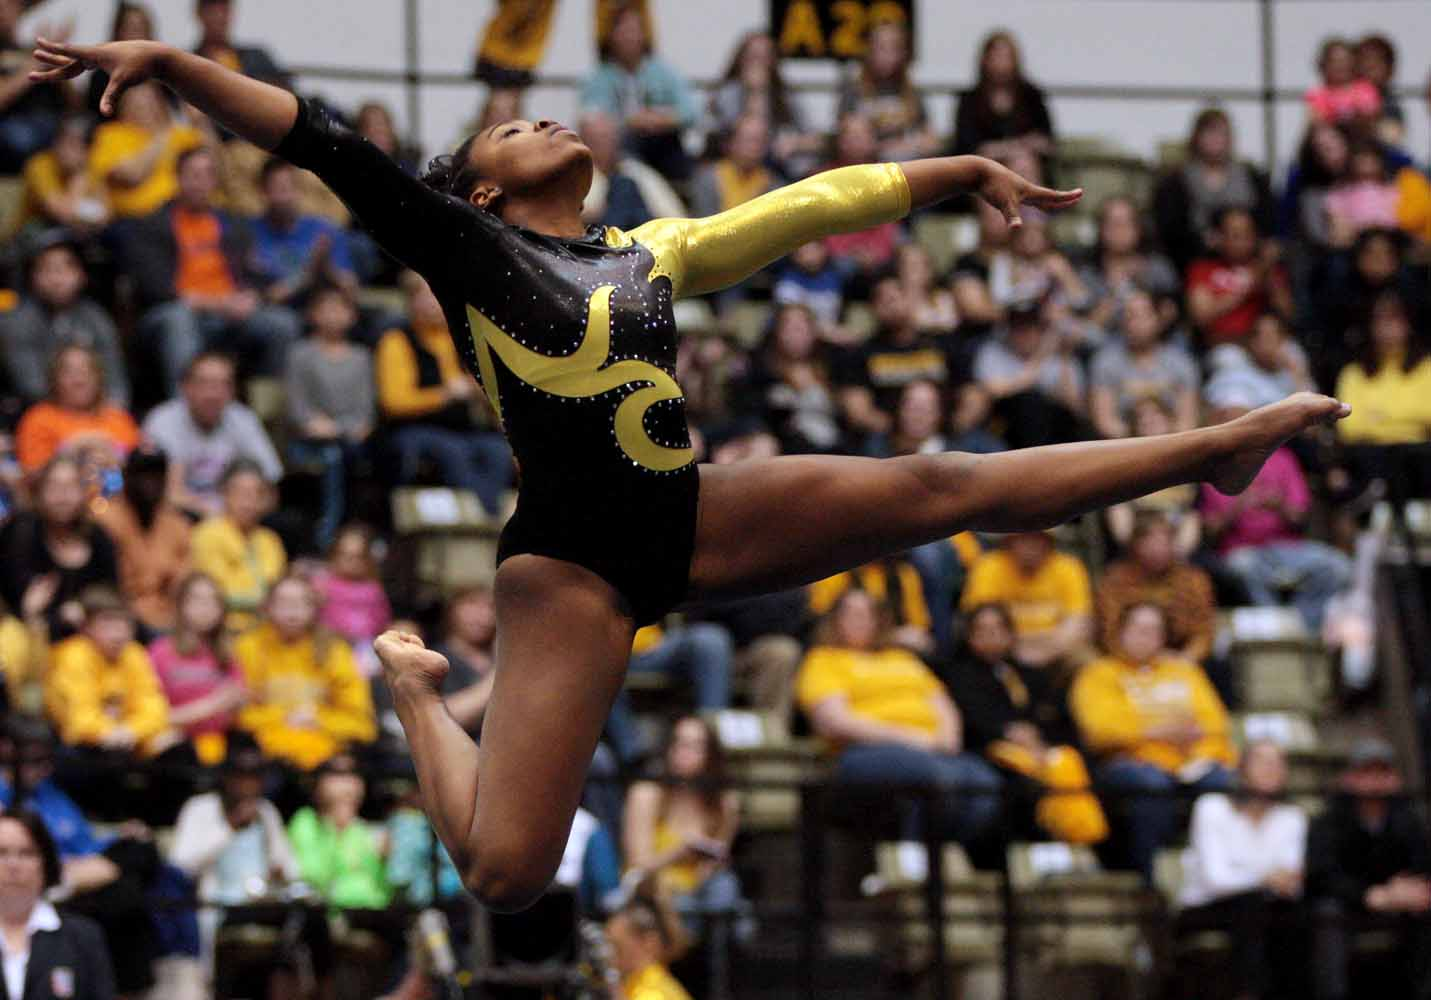 Mizzou sophomore Kennedi Harris leaps into a pose during her floor routine Friday evening, Feb. 19, 2016 at the Hearnes Center near the end of the gymnastics competition against the University of Florida.